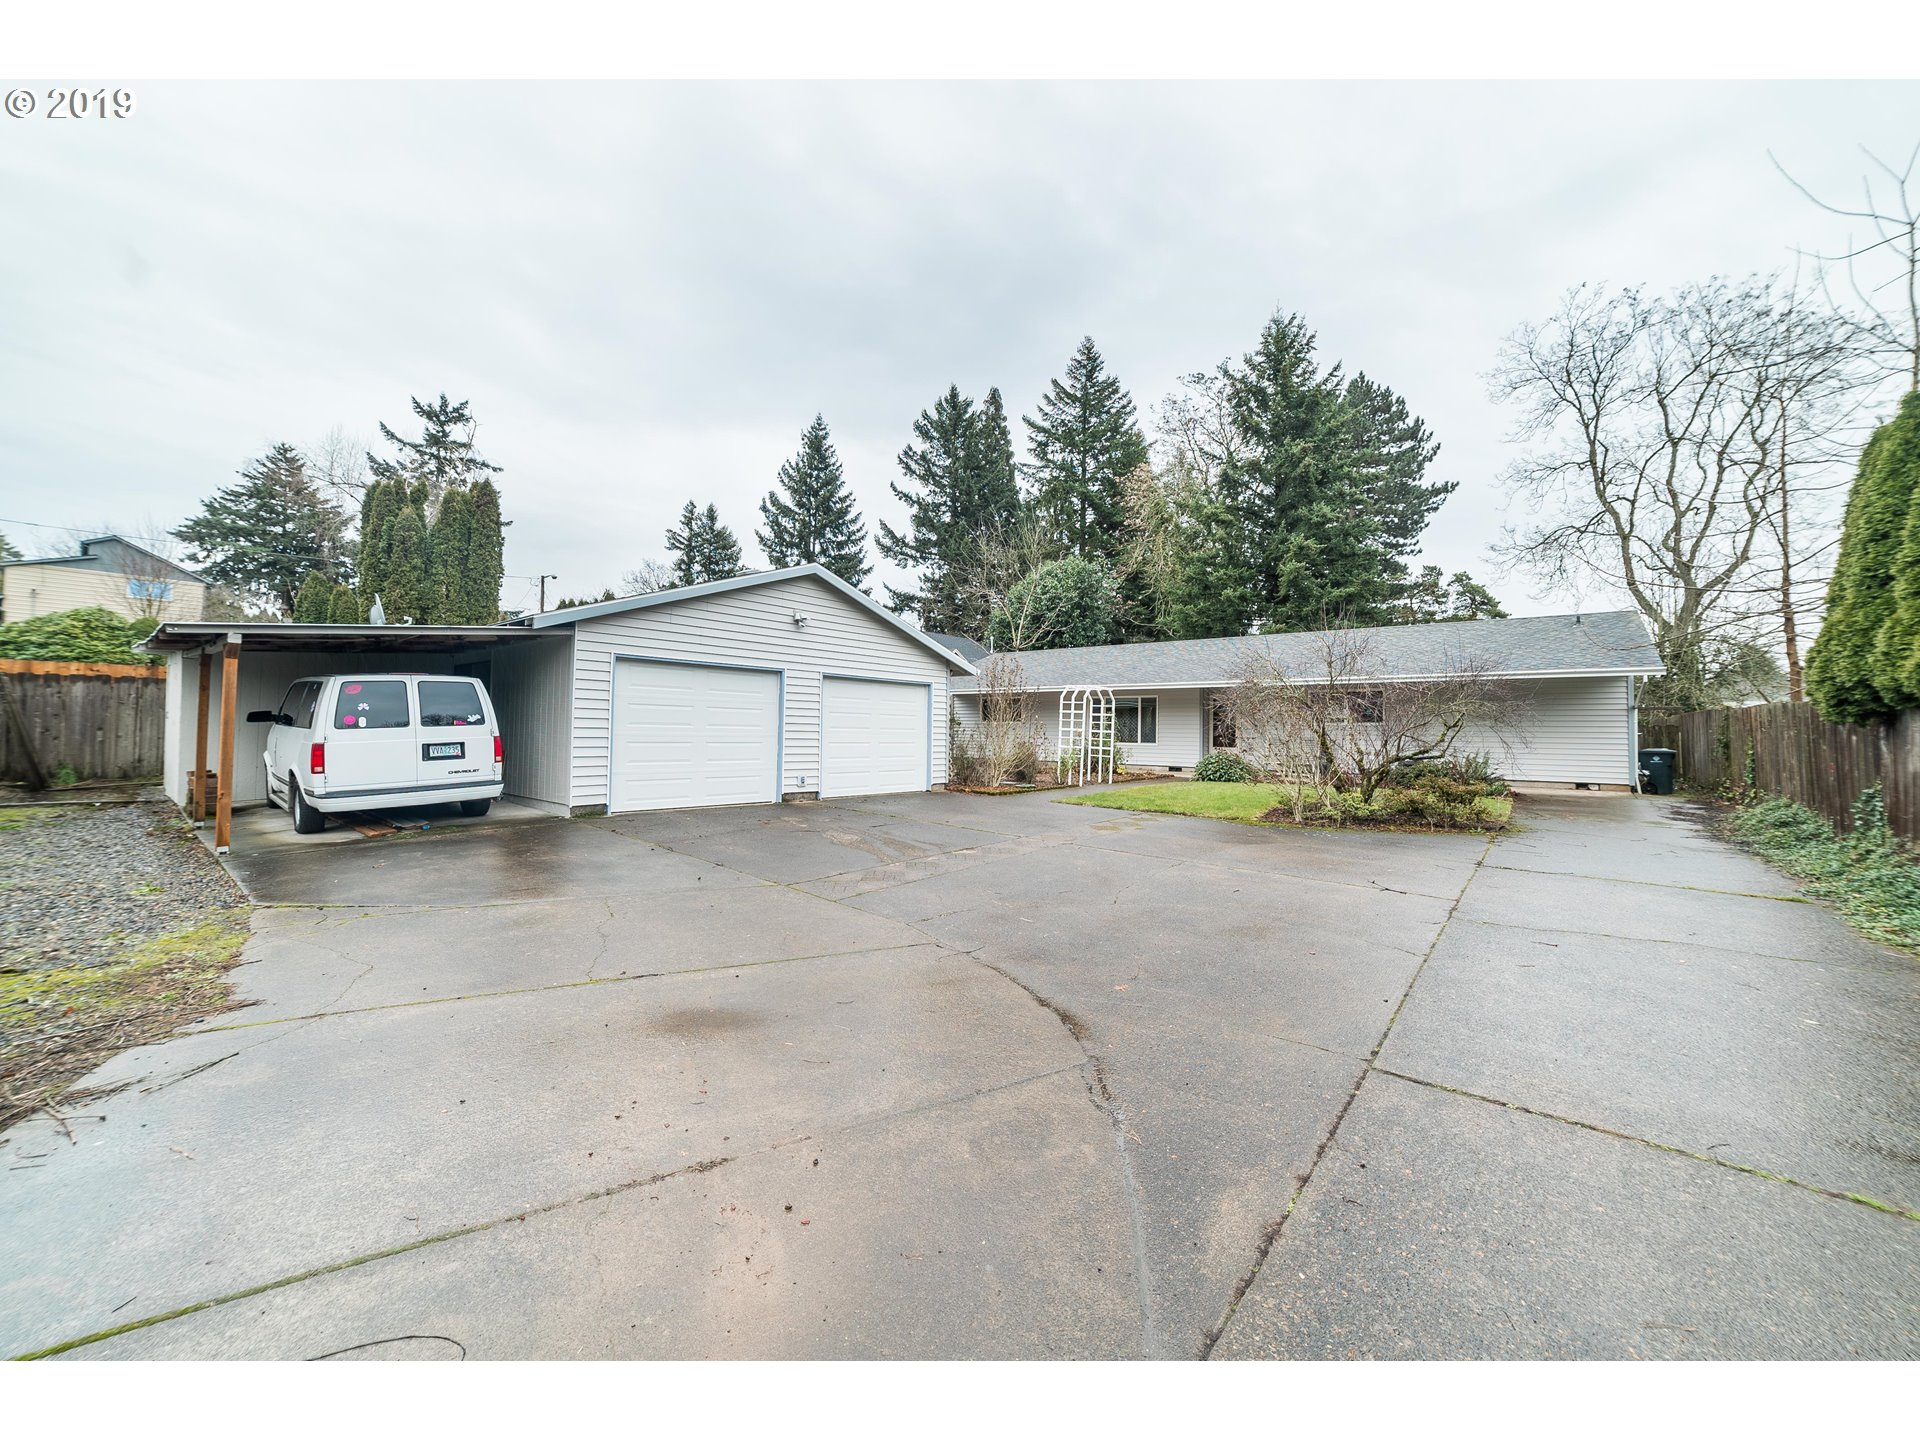 1626 sq. ft 3 bedrooms 2 bathrooms  House For Sale,Portland, OR